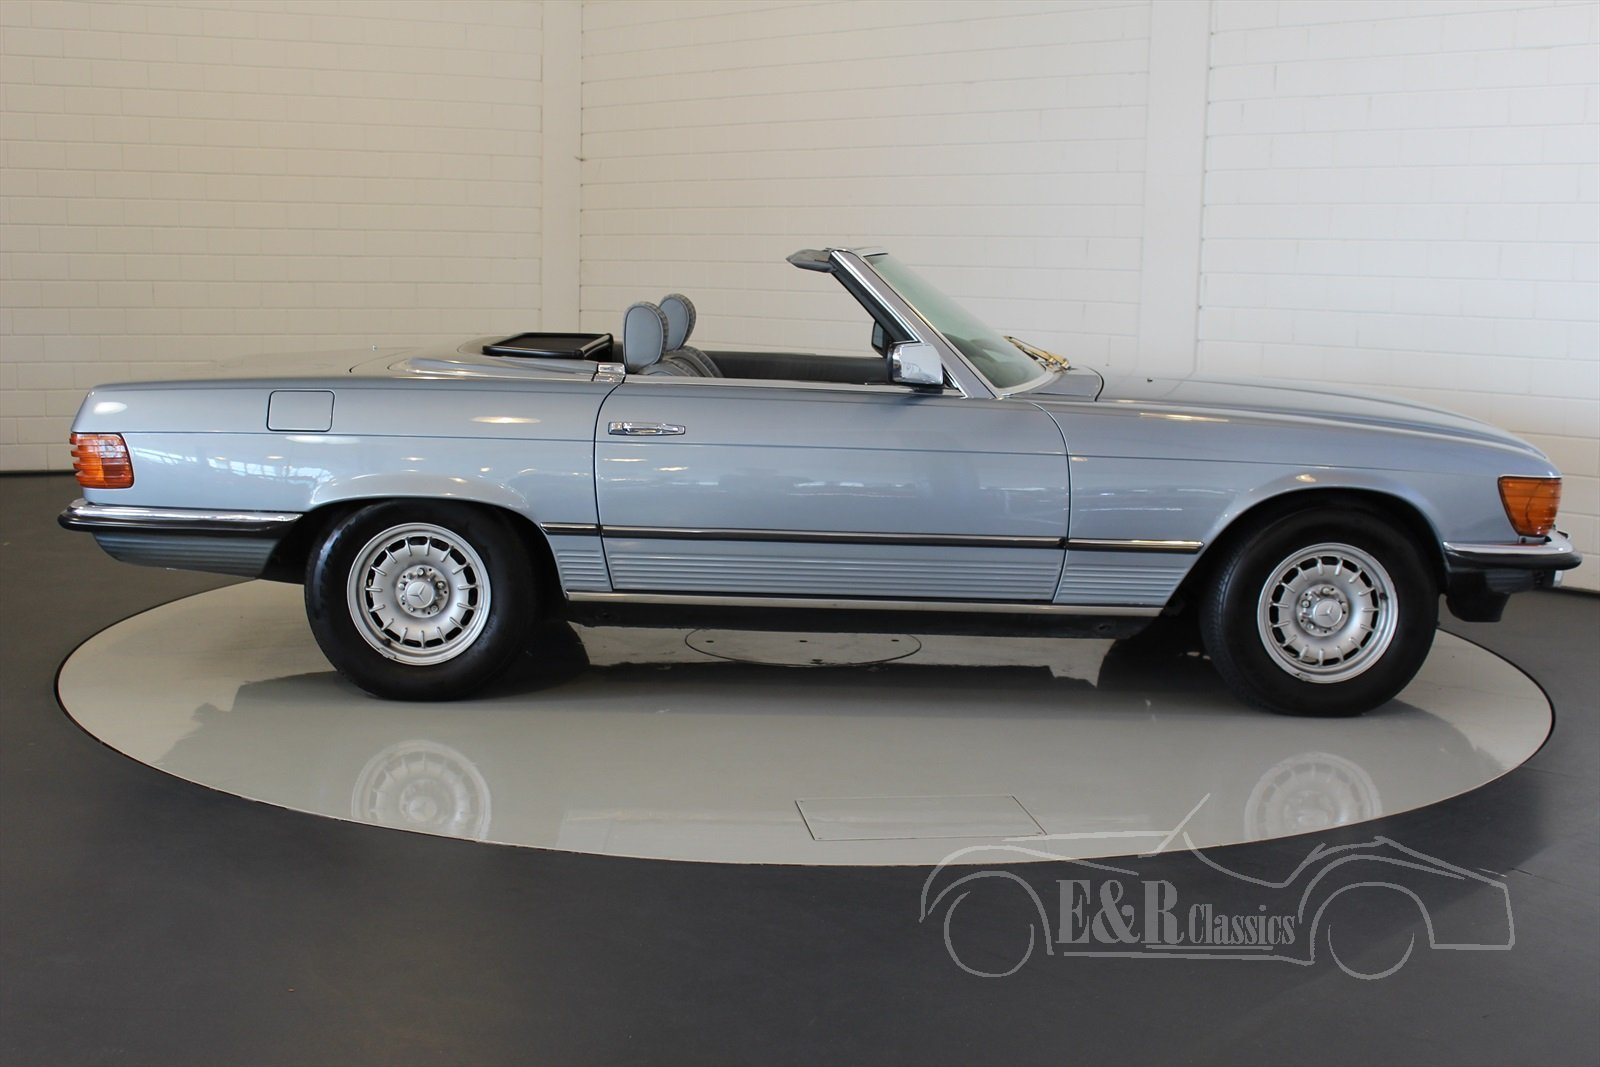 Mercedes-Benz SL 280 1983 European version For Sale (picture 3 of 6)